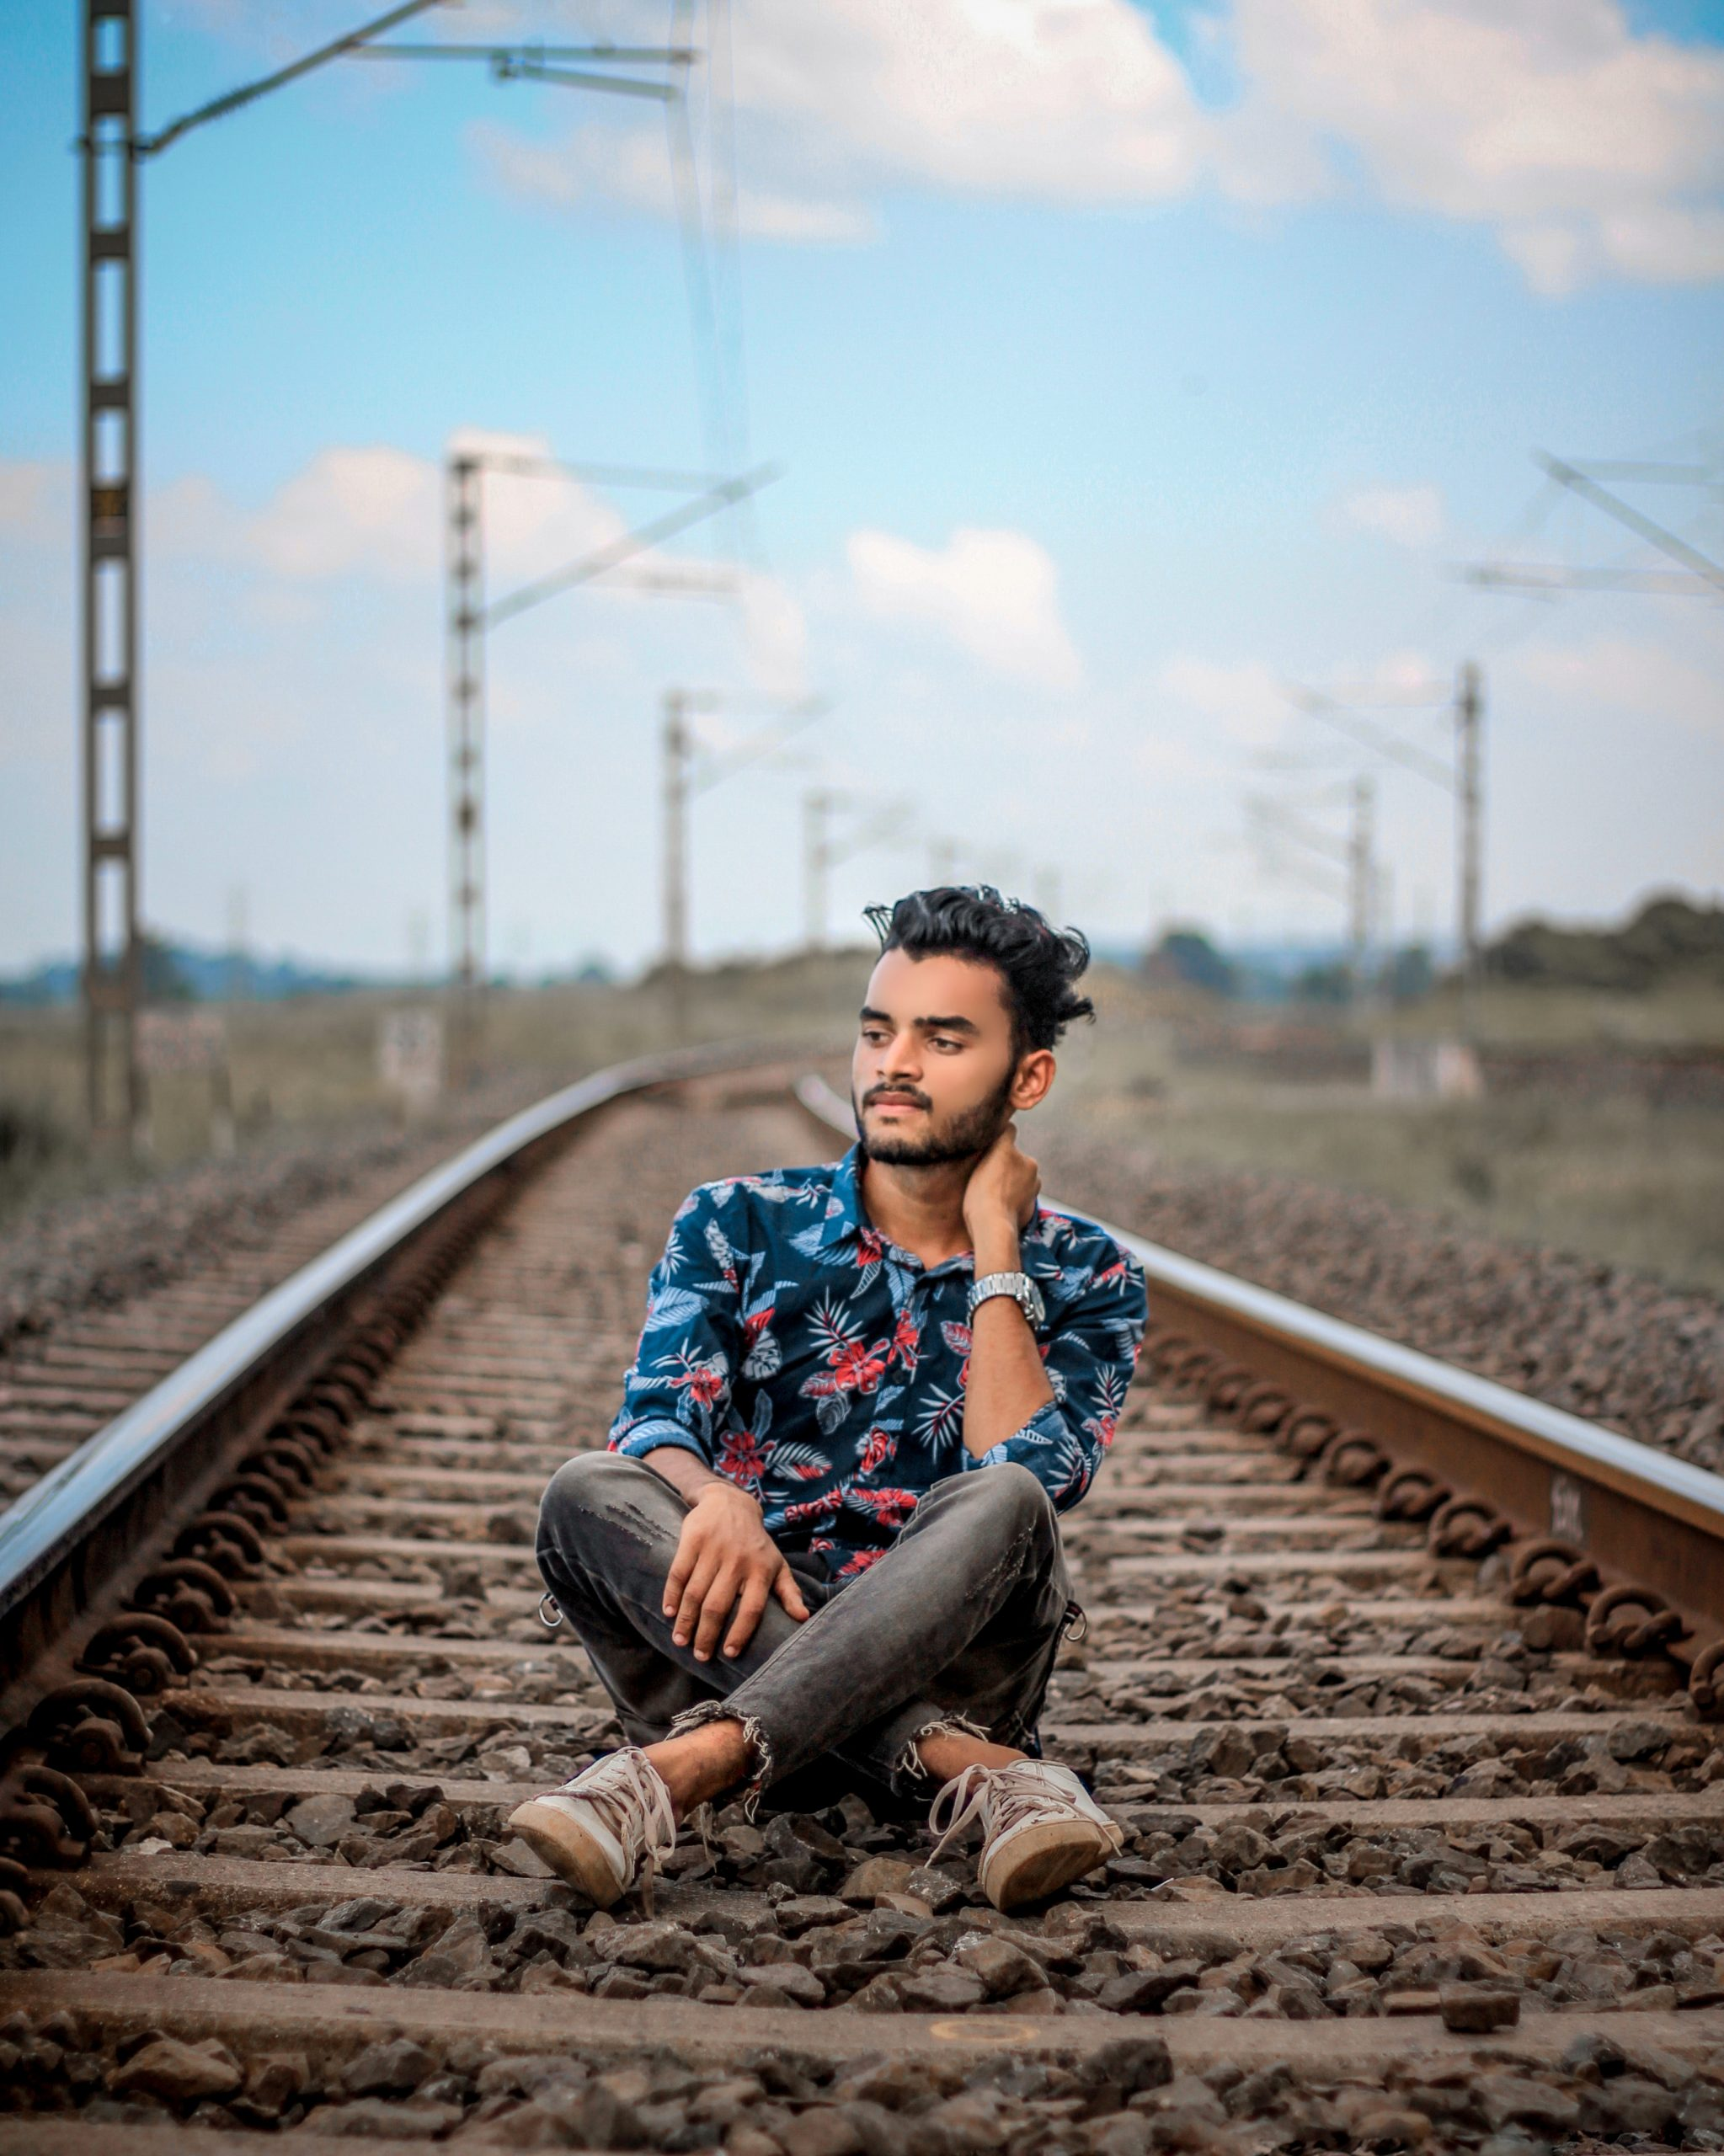 Boy posing on railway track